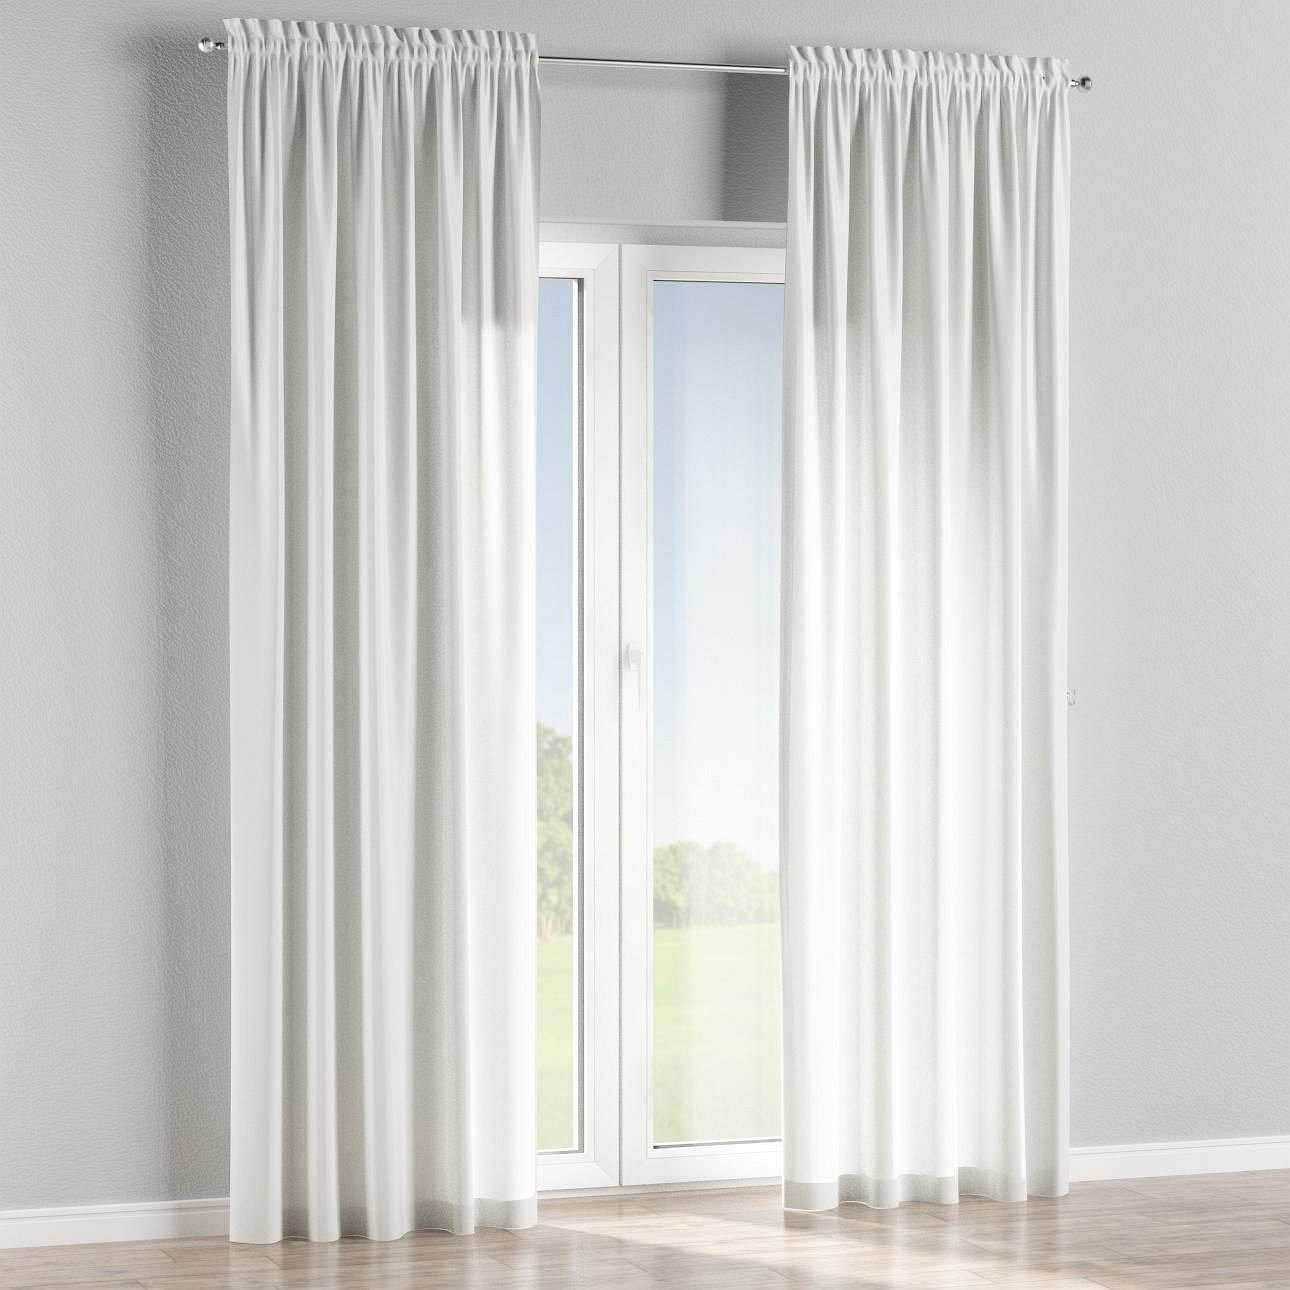 Slot and frill lined curtains in collection Ashley, fabric: 137-47